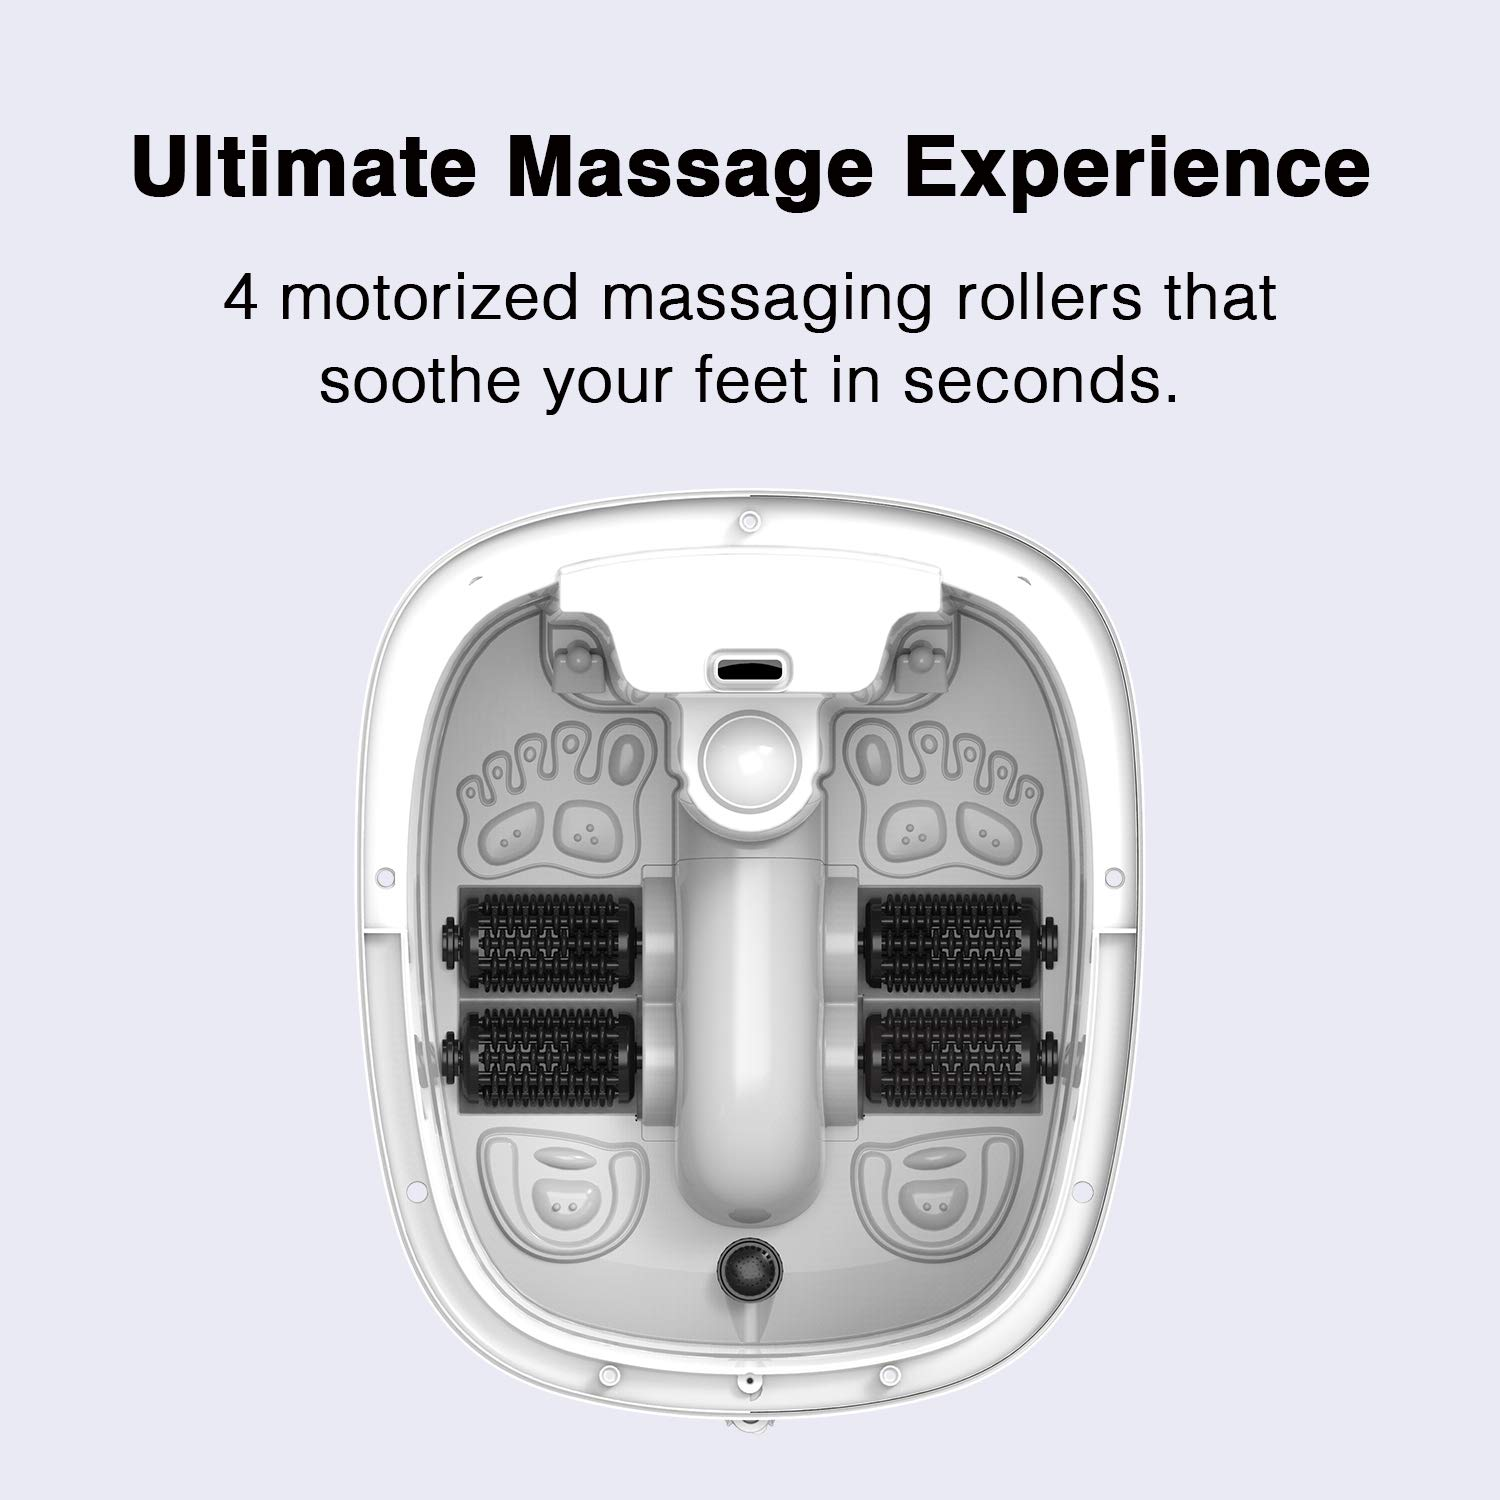 Comfortology Aura Foot Spa Massager - Super Fast Heating System, 4 Motorized Massaging Rollers, Whisper Quiet, 10L Bath Tub With Remote Control by COMFORTOLOGY (Image #4)